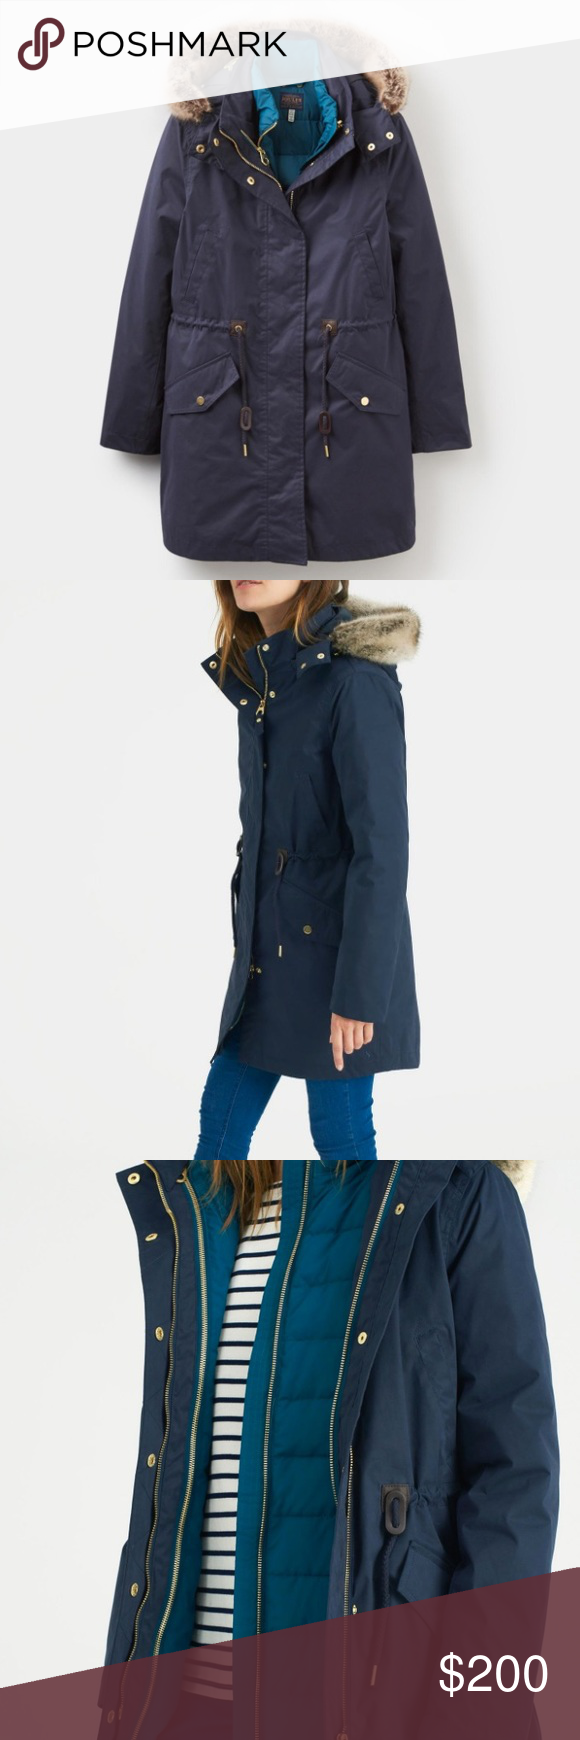 Joules Wyndfall Navy 3-in-1 Parka Style Coat Joules Wyndfall Marine Navy 3-in-1 Parka Style Coat --- BRAND NEW WITH TAGS: Perfect to pull on whatever the weather you can wear the soft, peached cotton, 100% waterproof, cinched in waist, jacket on its own, the padded inner jacket seperately or, when extra warmth and protection is required, zip them both together.  3-in-1 coat and jacket 100% waterproof Adjustable waist Dropped hem Front pockets Faux fur trimmed hood Length 90cm Joules Jackets…